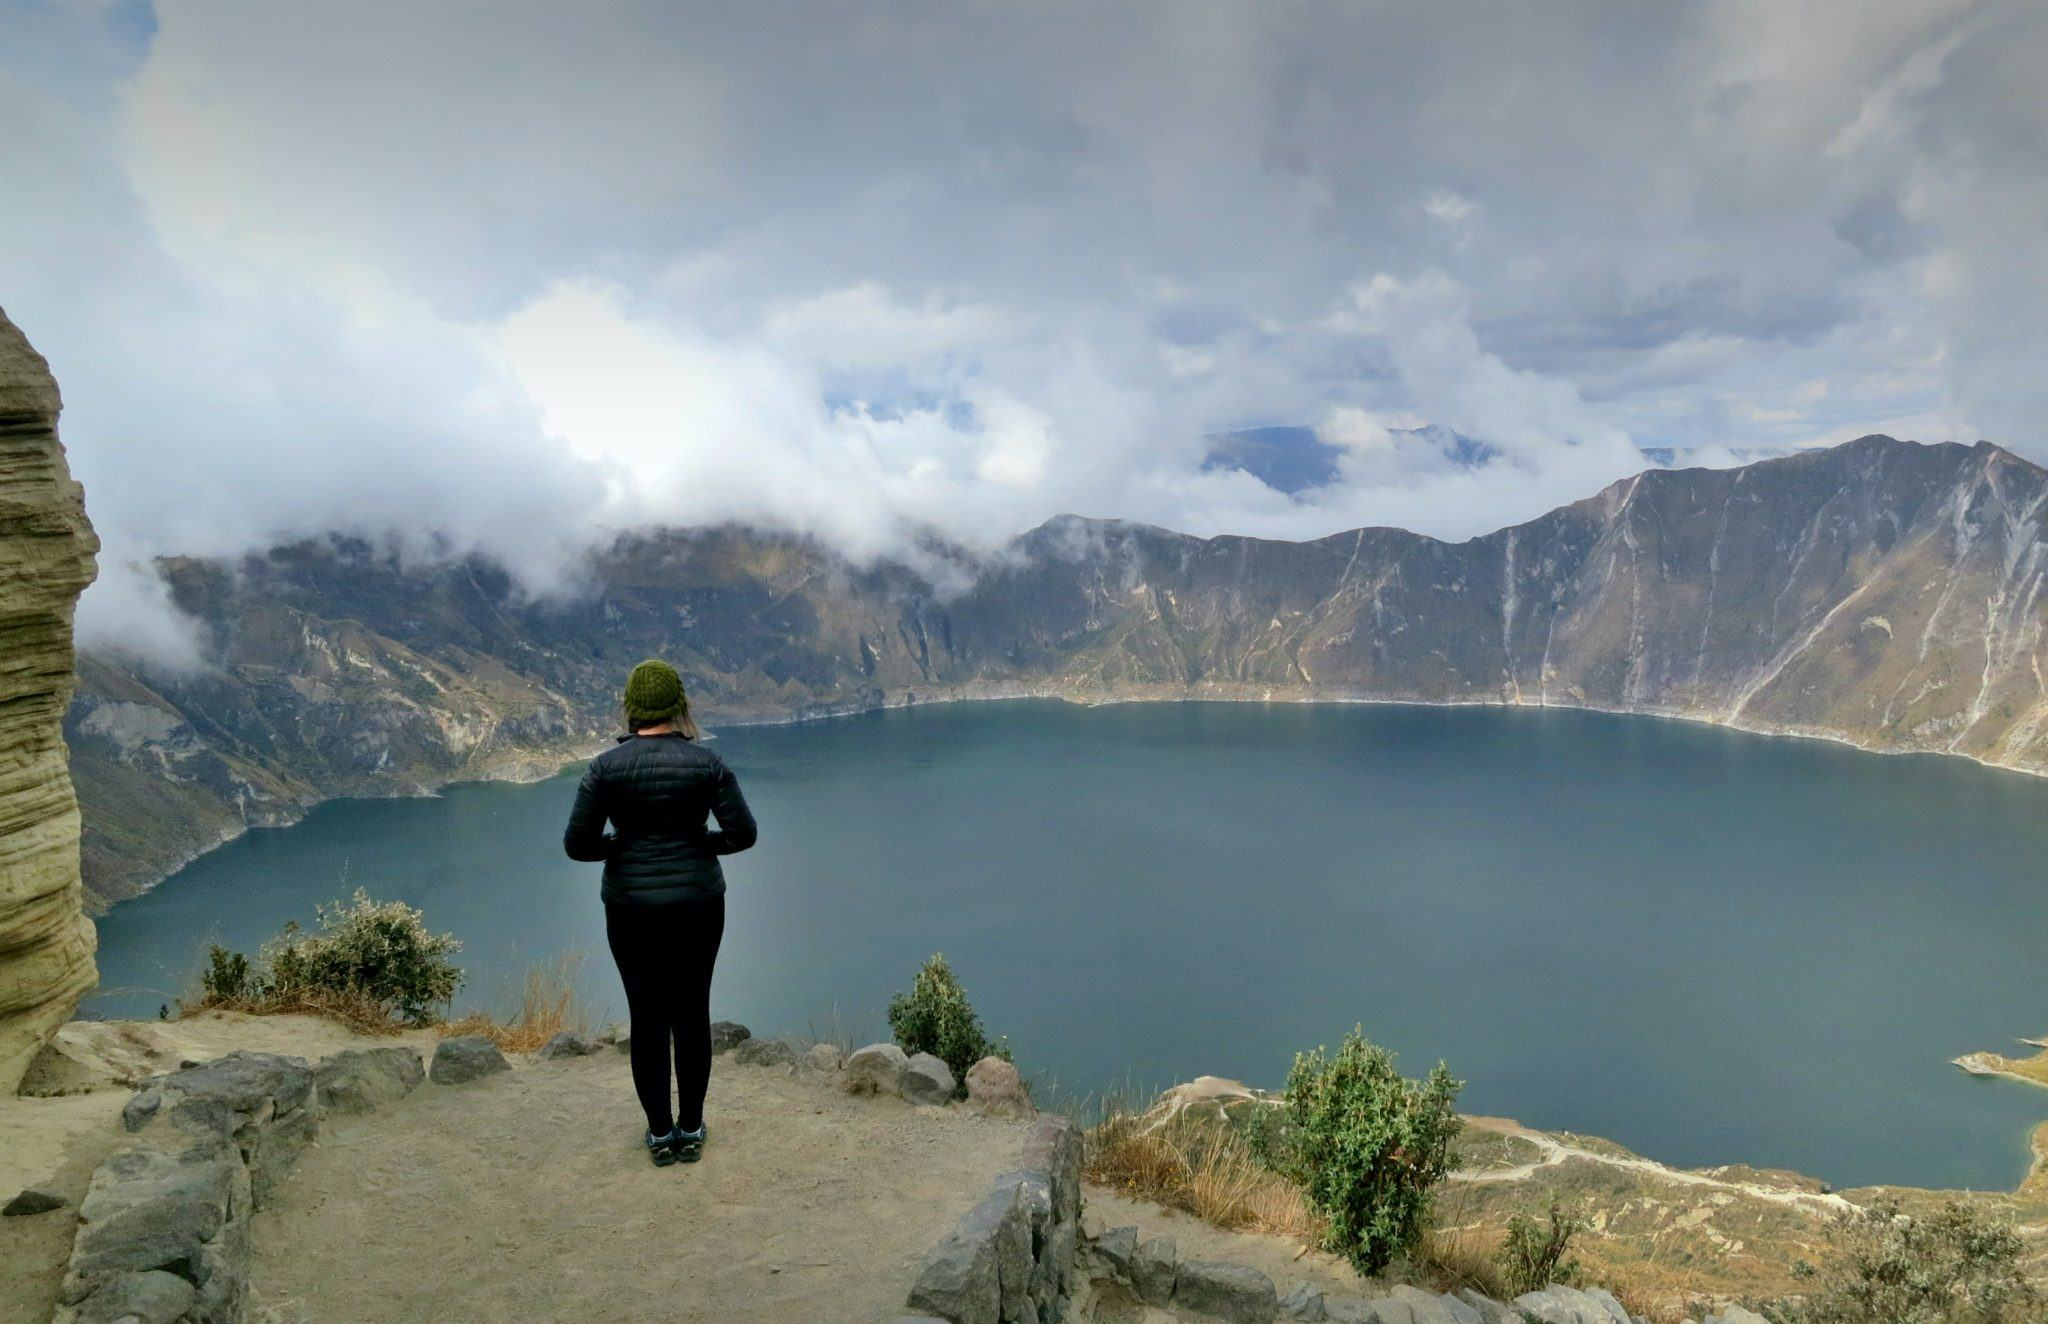 Looking out over beautiful Quilotoa Lake in the high Andes mountains in Ecuador.